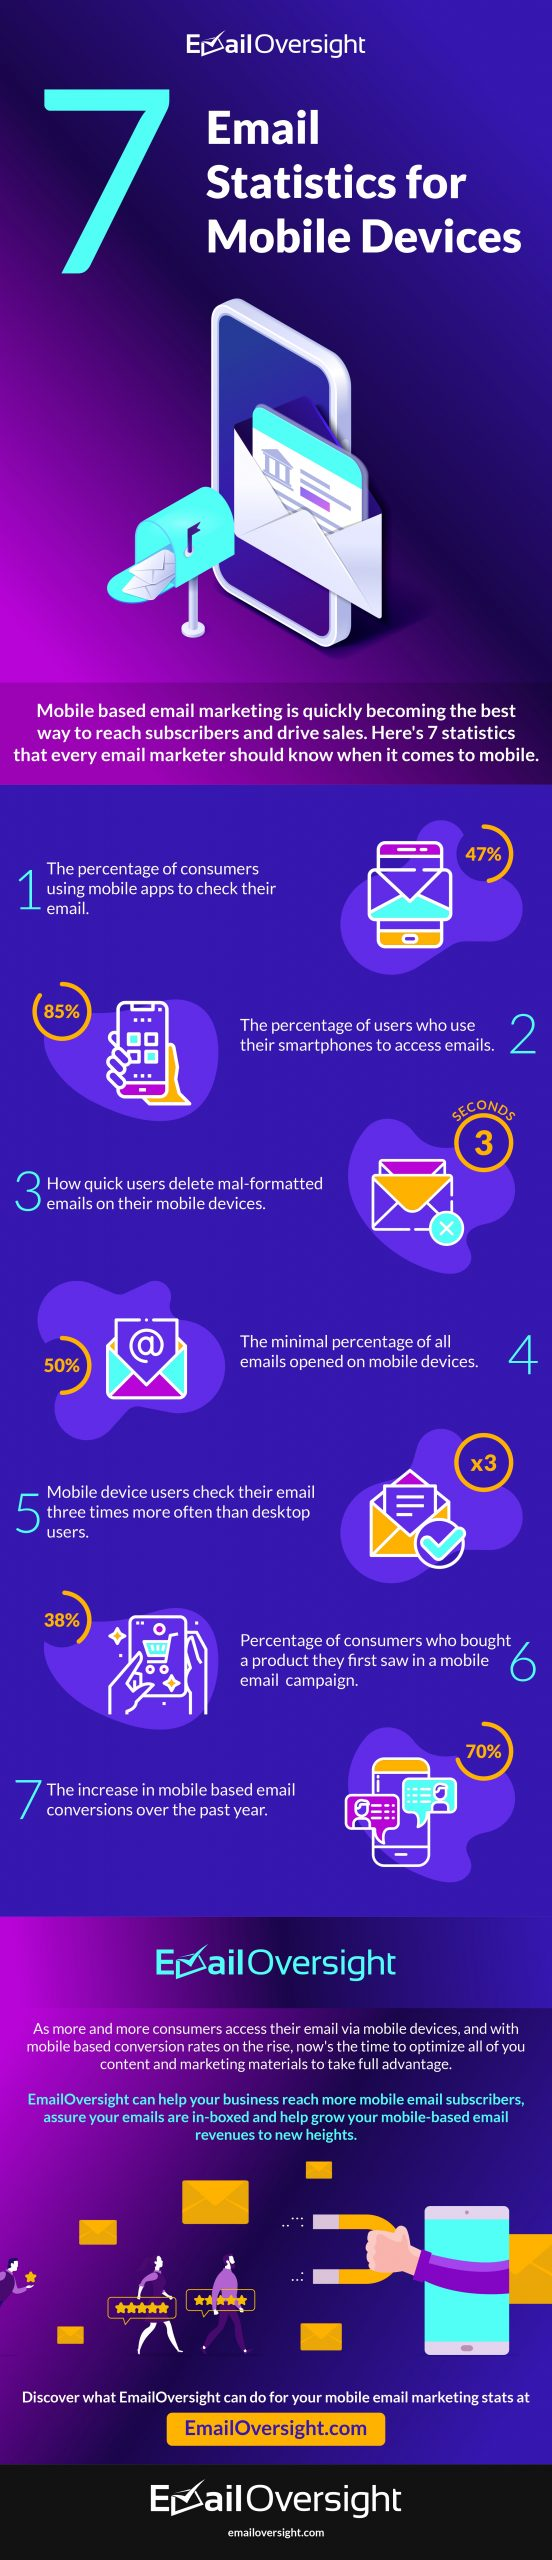 7 Email Statistics for Mobile Devices